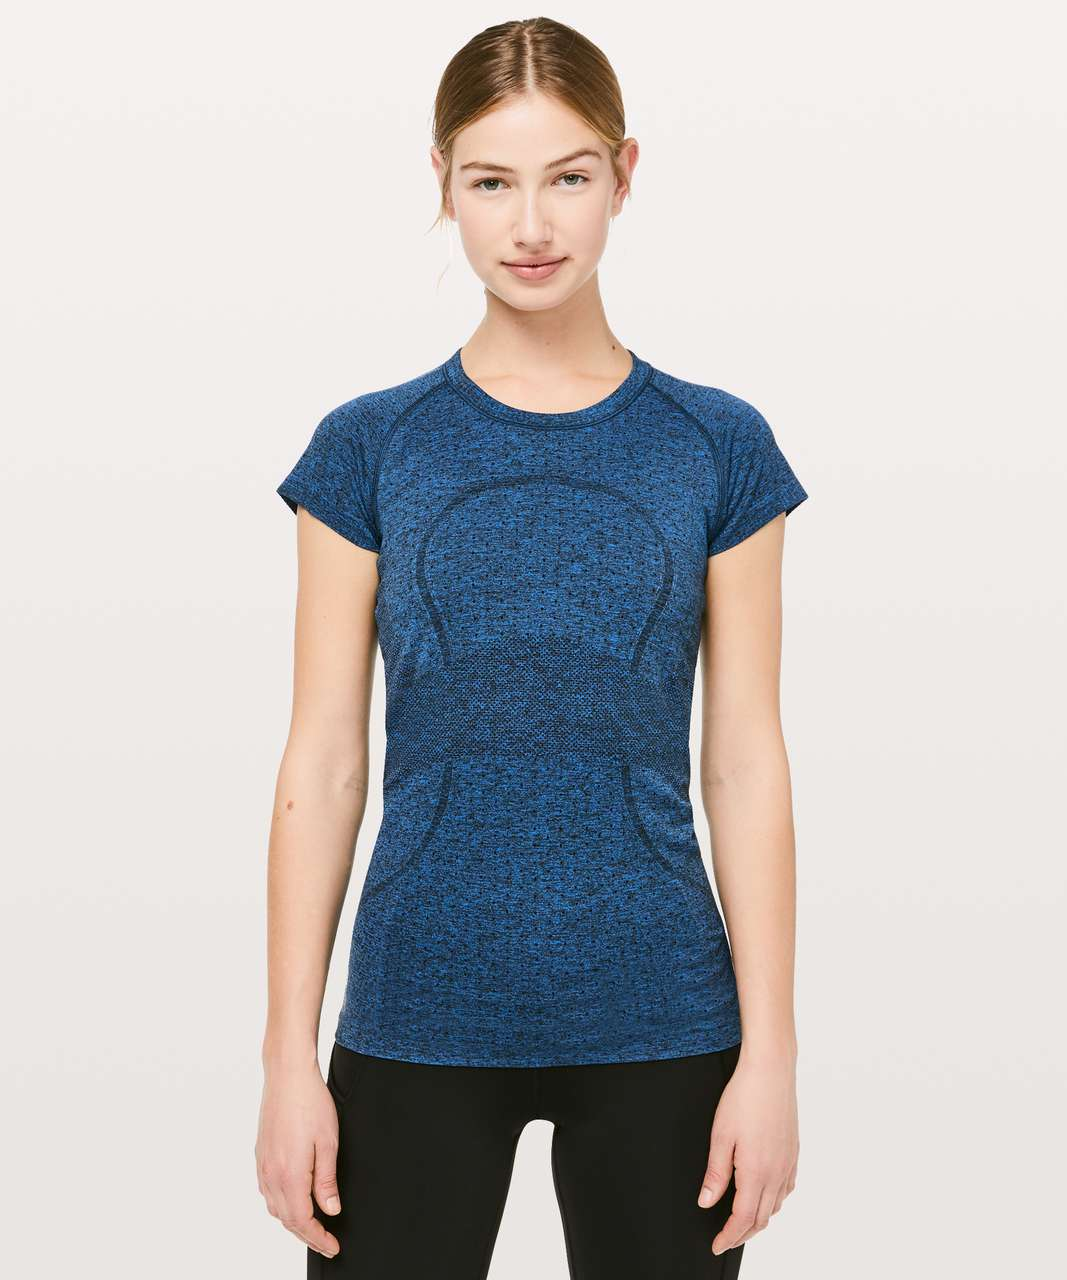 Lululemon Swiftly Tech Short Sleeve Crew - Chromatic Cobalt / Black